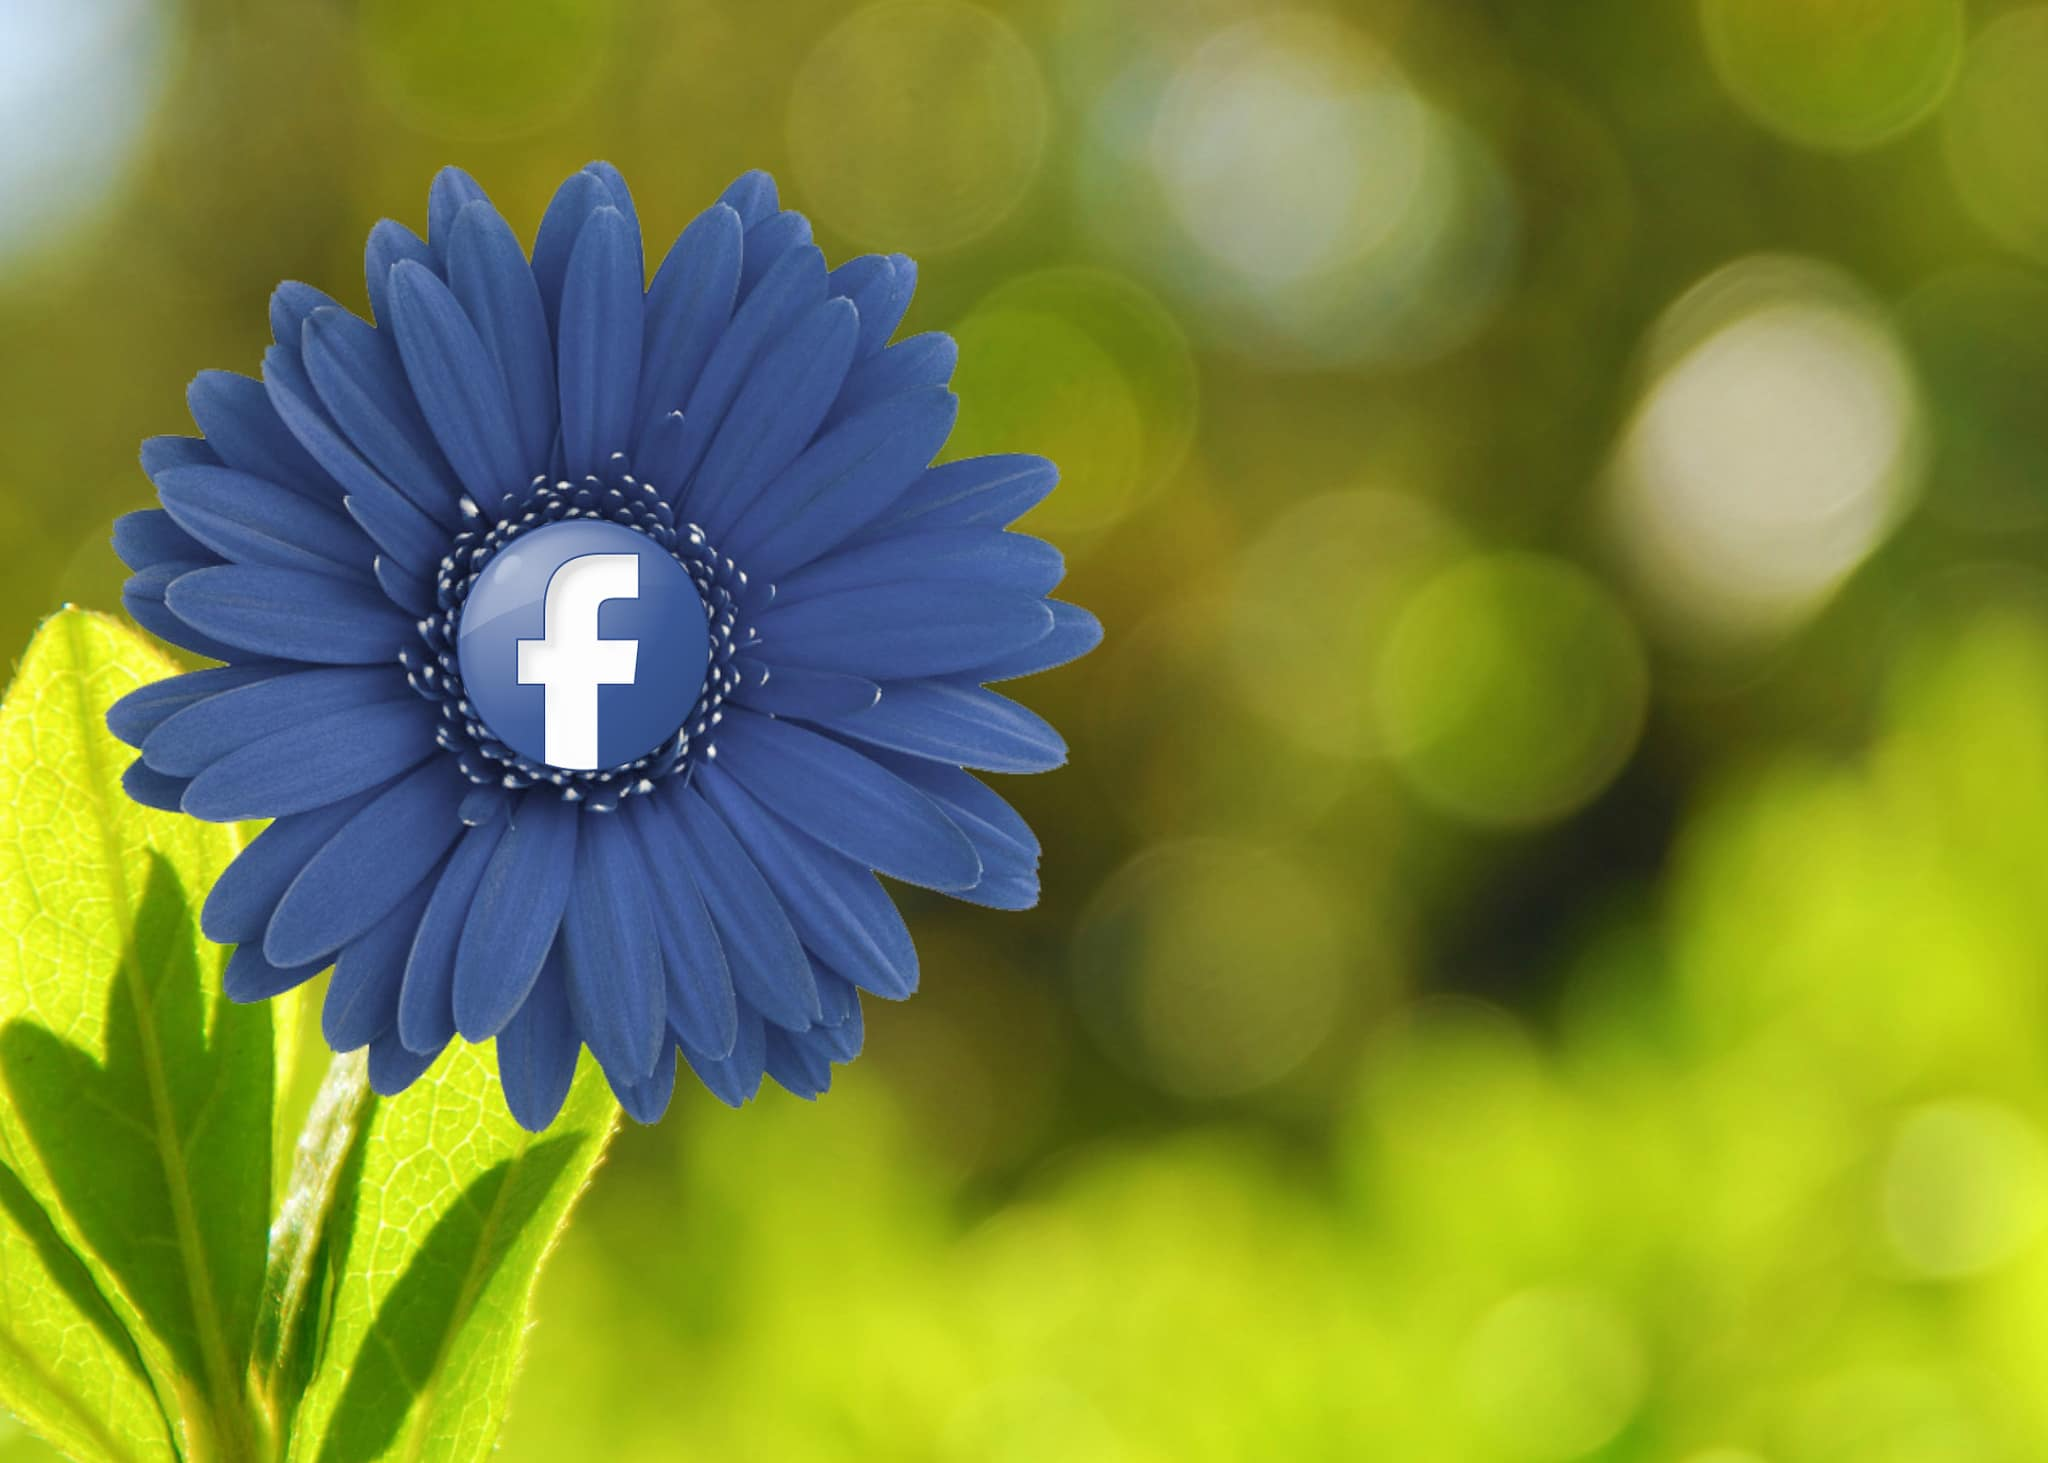 15 Tips for beefing up your security and privacy on Facebook